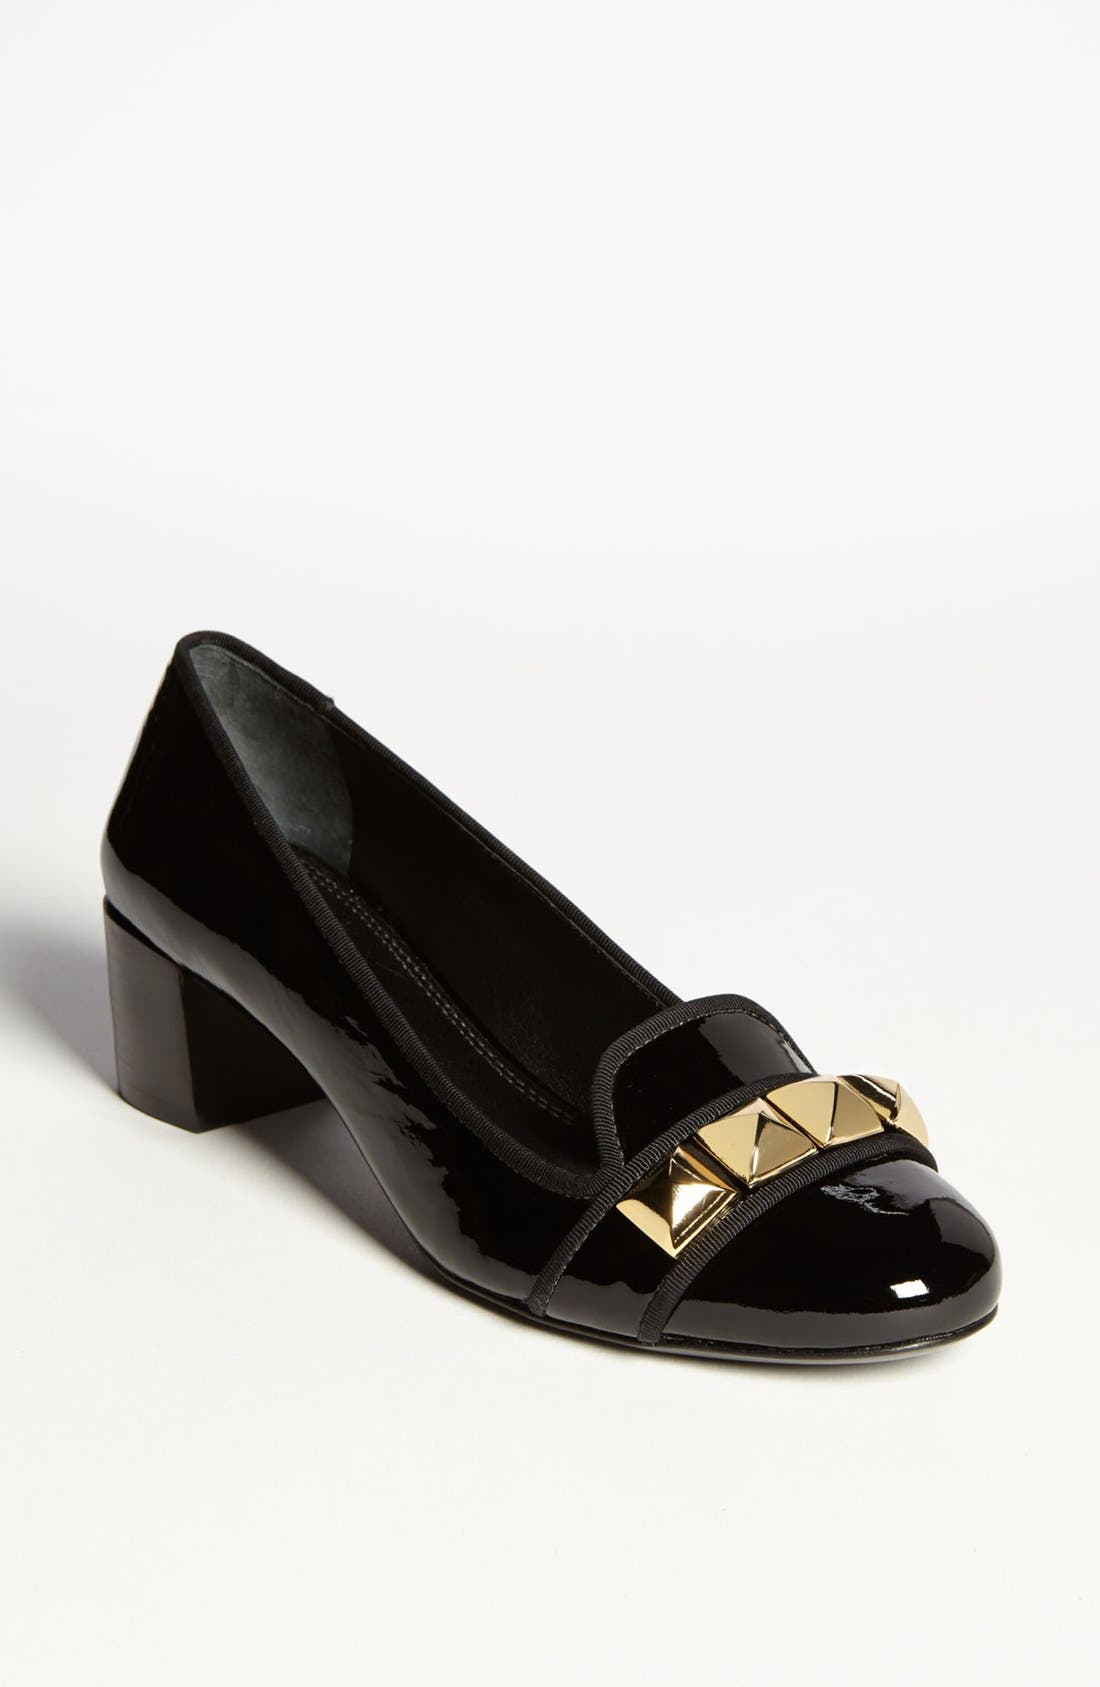 Main Image - Tory Burch 'Asher' Pump (Nordstrom Exclusive)